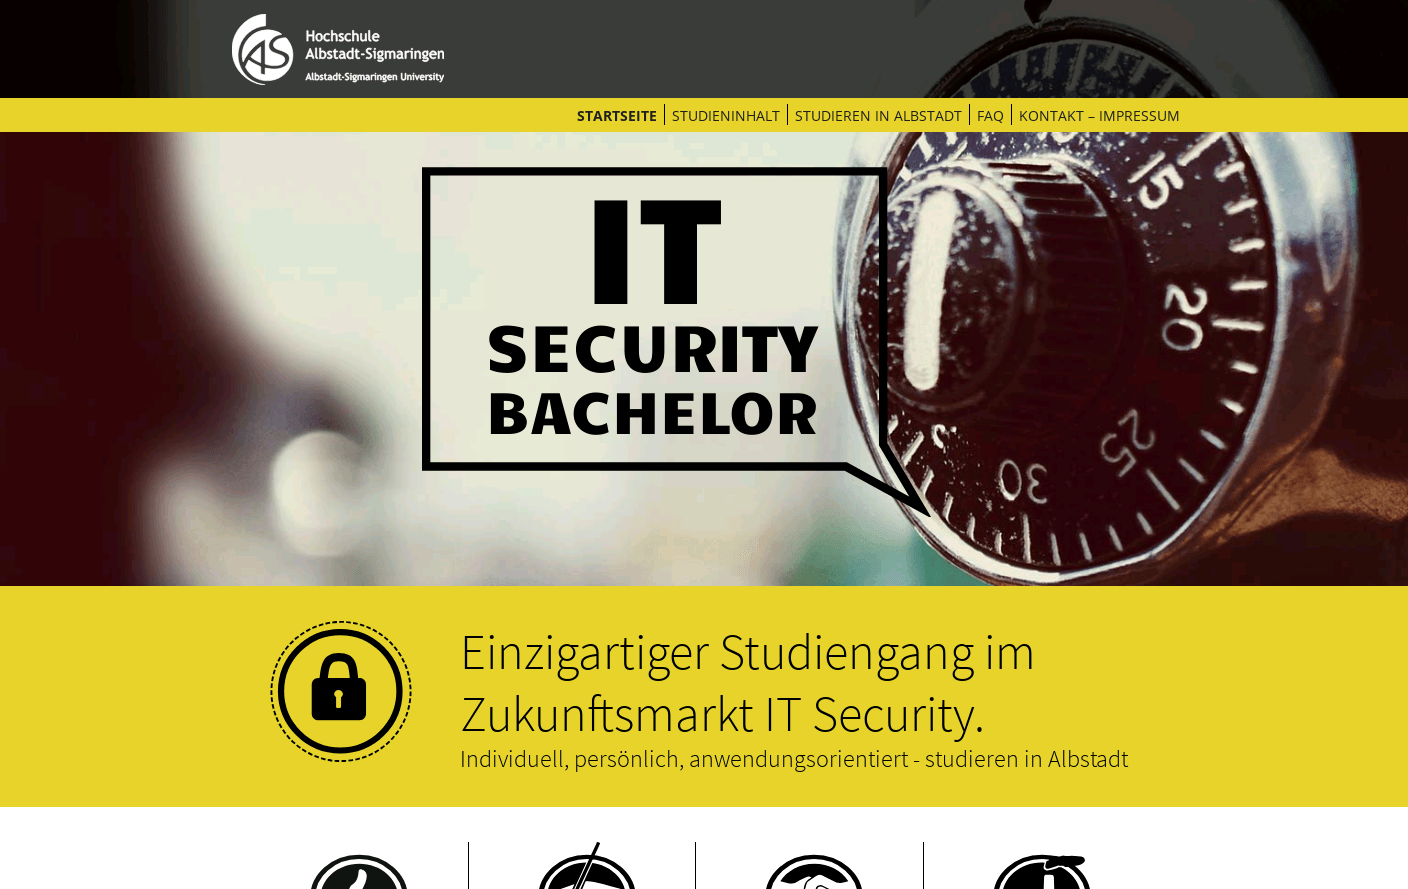 Studiengang IT Security